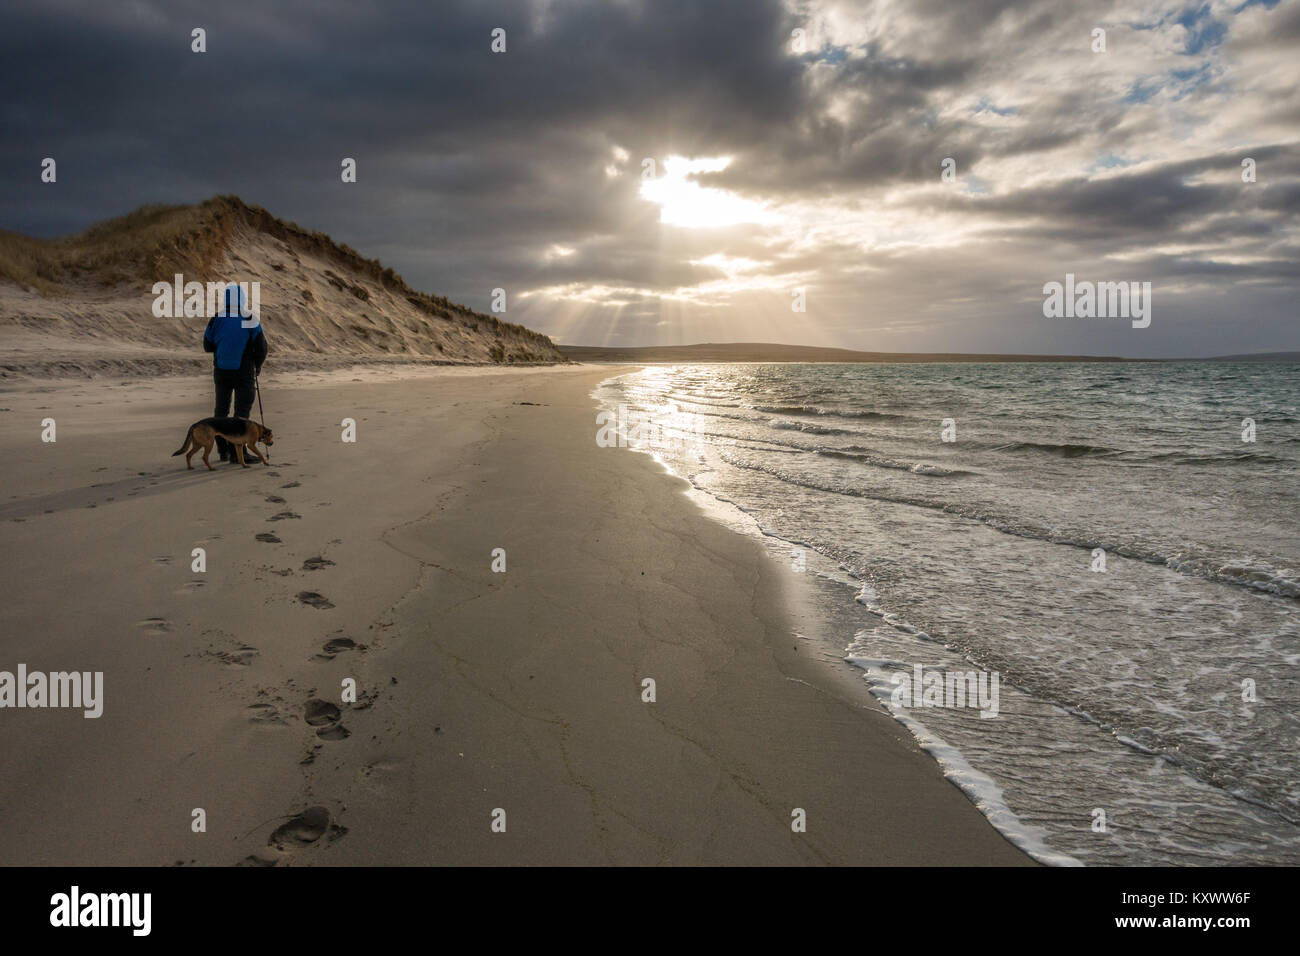 Sand dunes lit up at the beach at Killinallan on Loch Gruinart in dramatic winter low sunlight with walker person - Stock Image